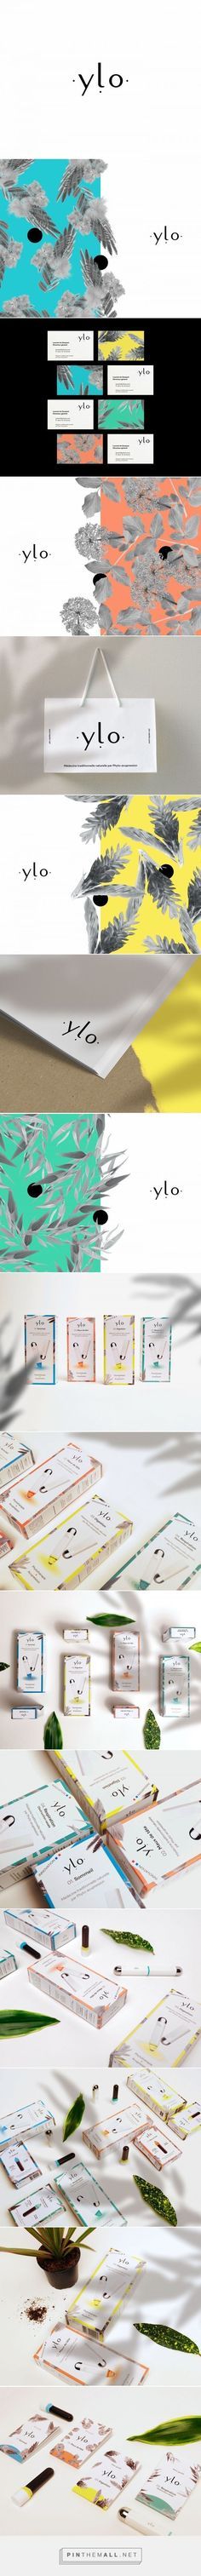 Ylo Health Products Branding and Packaging by Brand Brothers | Fivestar Branding Agency – Design and Branding Agency & Curated Inspiration Gallery #branding #brand #packaging #packagingdesign #design #designinspiration